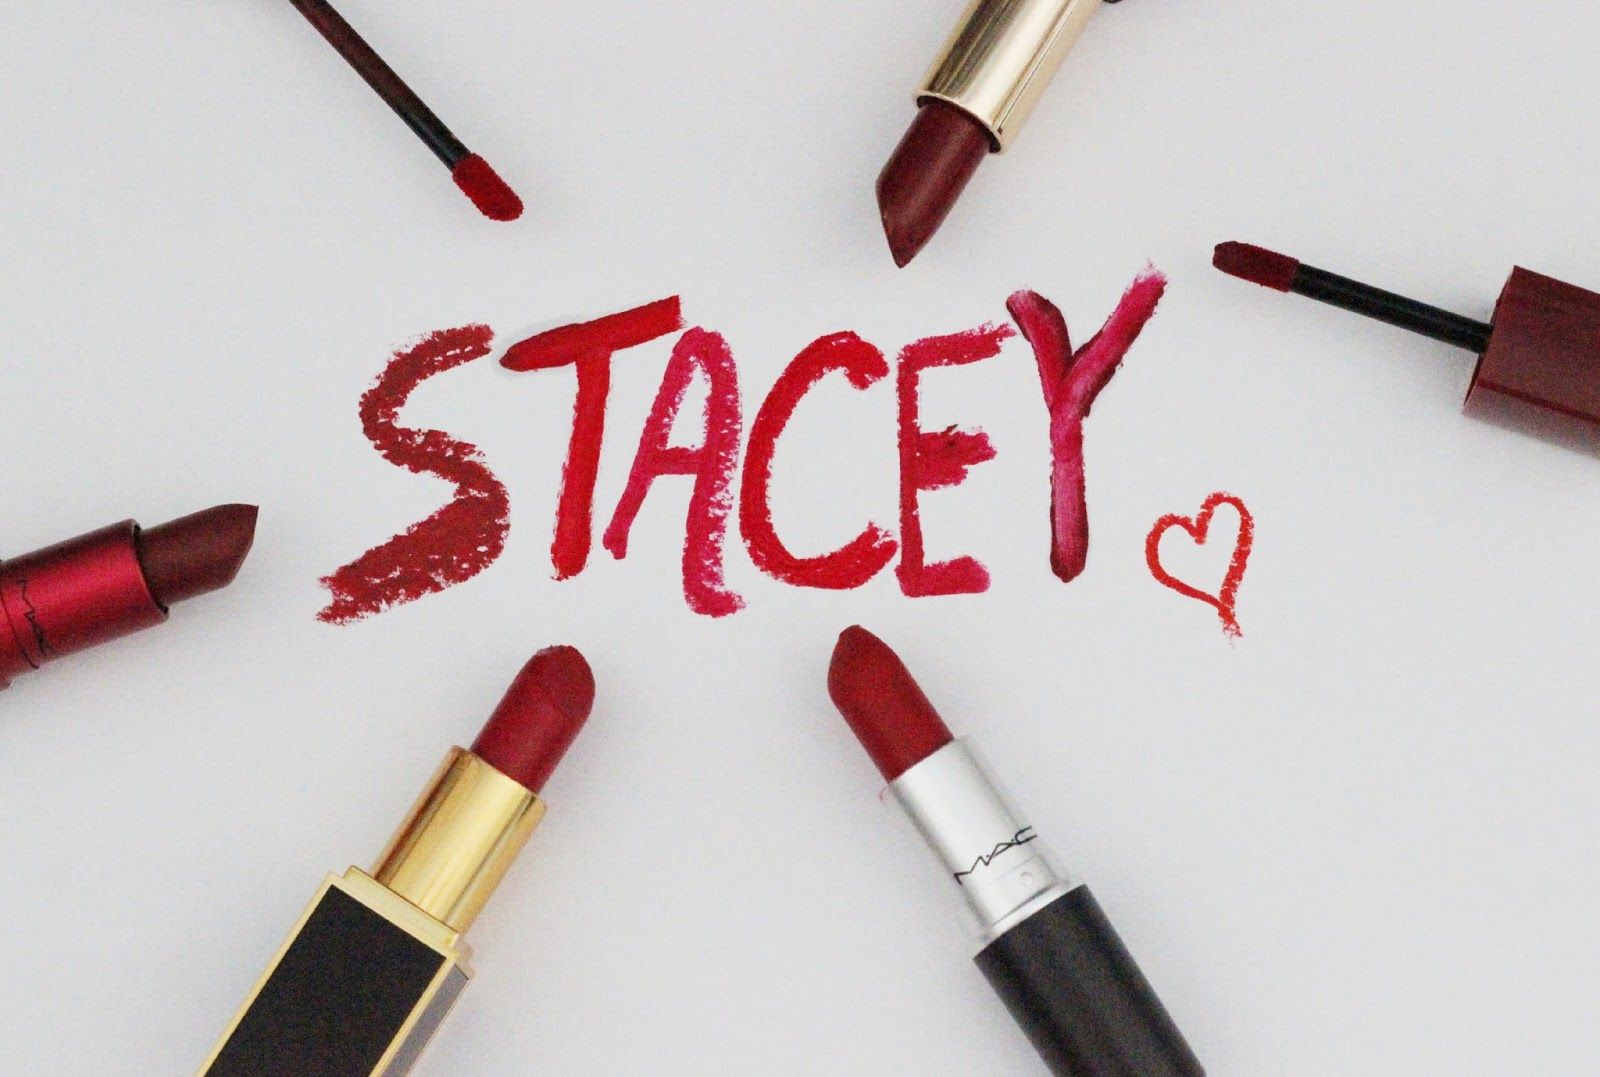 Guest Post | 6 Red Lipsticks That Make You Feel Movie Star Glamorous